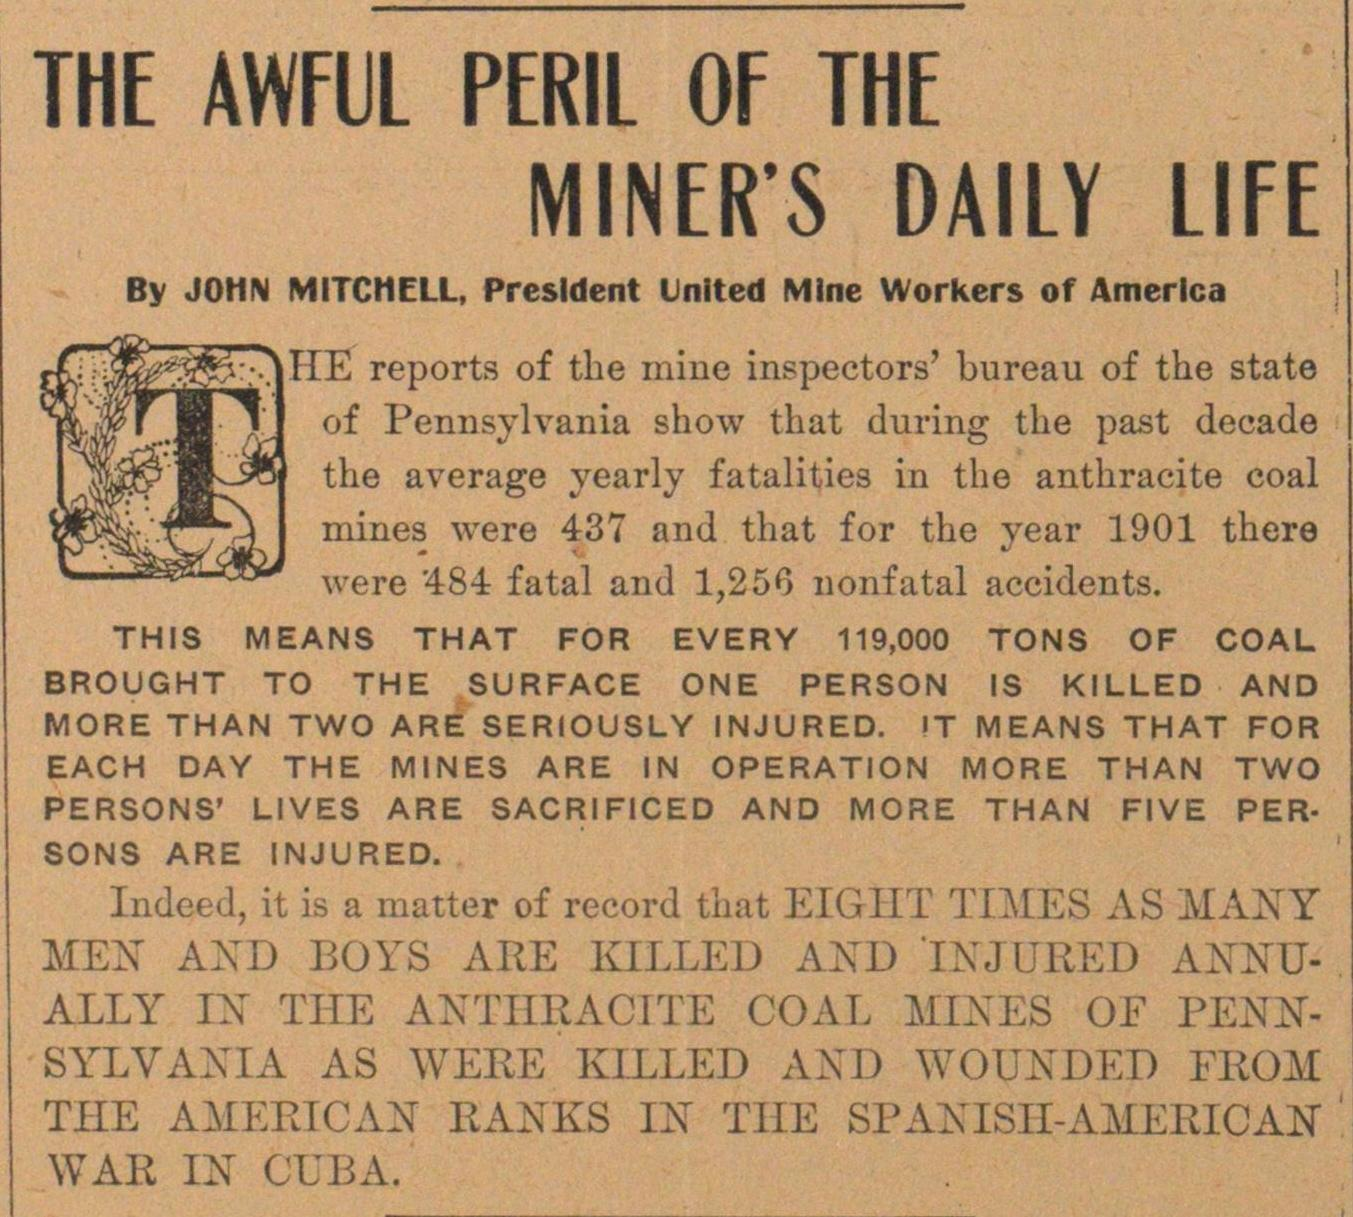 The Awful Peril Of The Miner's Daily Life image